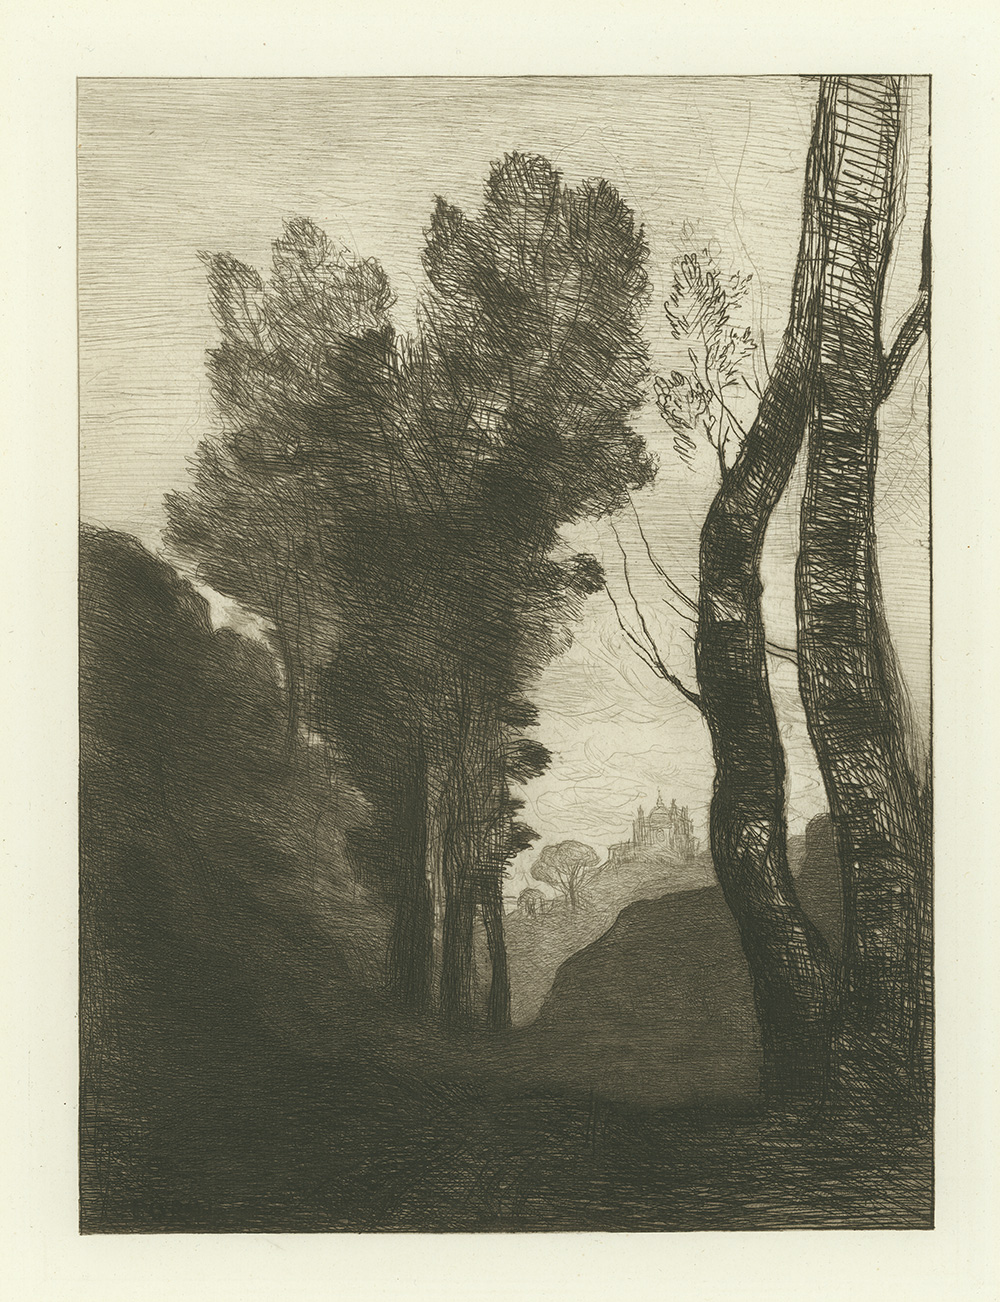 Environs de Rome by Jean-Baptiste Camille Corot